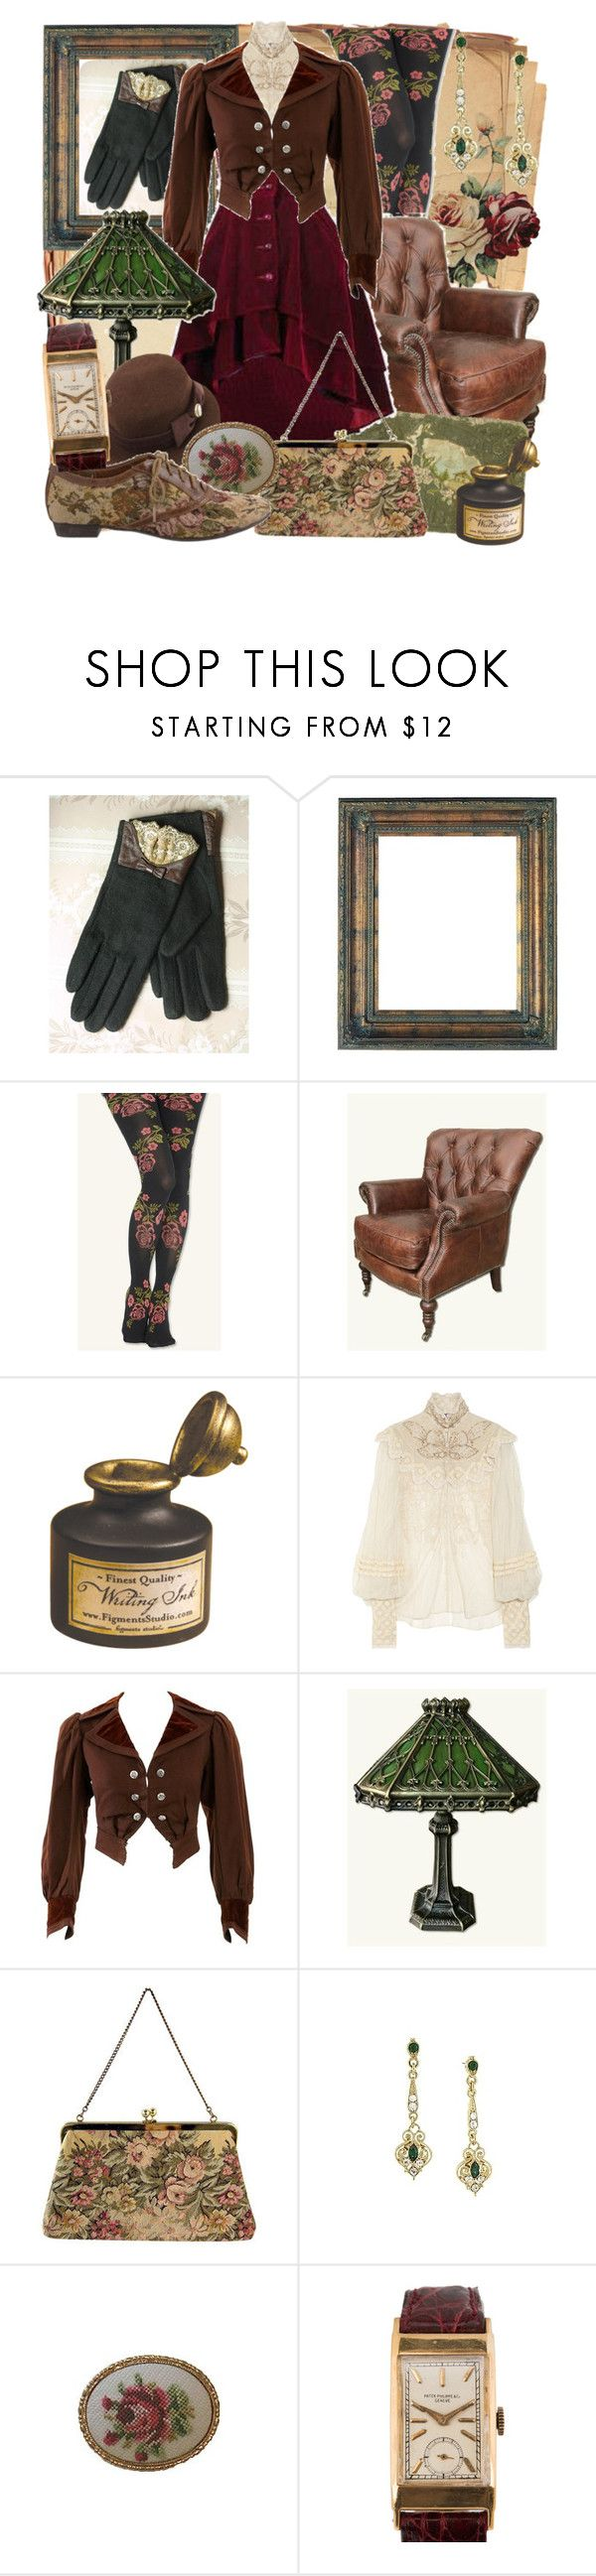 """Antique Addict"" by larkspurlane ❤ liked on Polyvore featuring Ralph Lauren Collection and Patek Philippe"